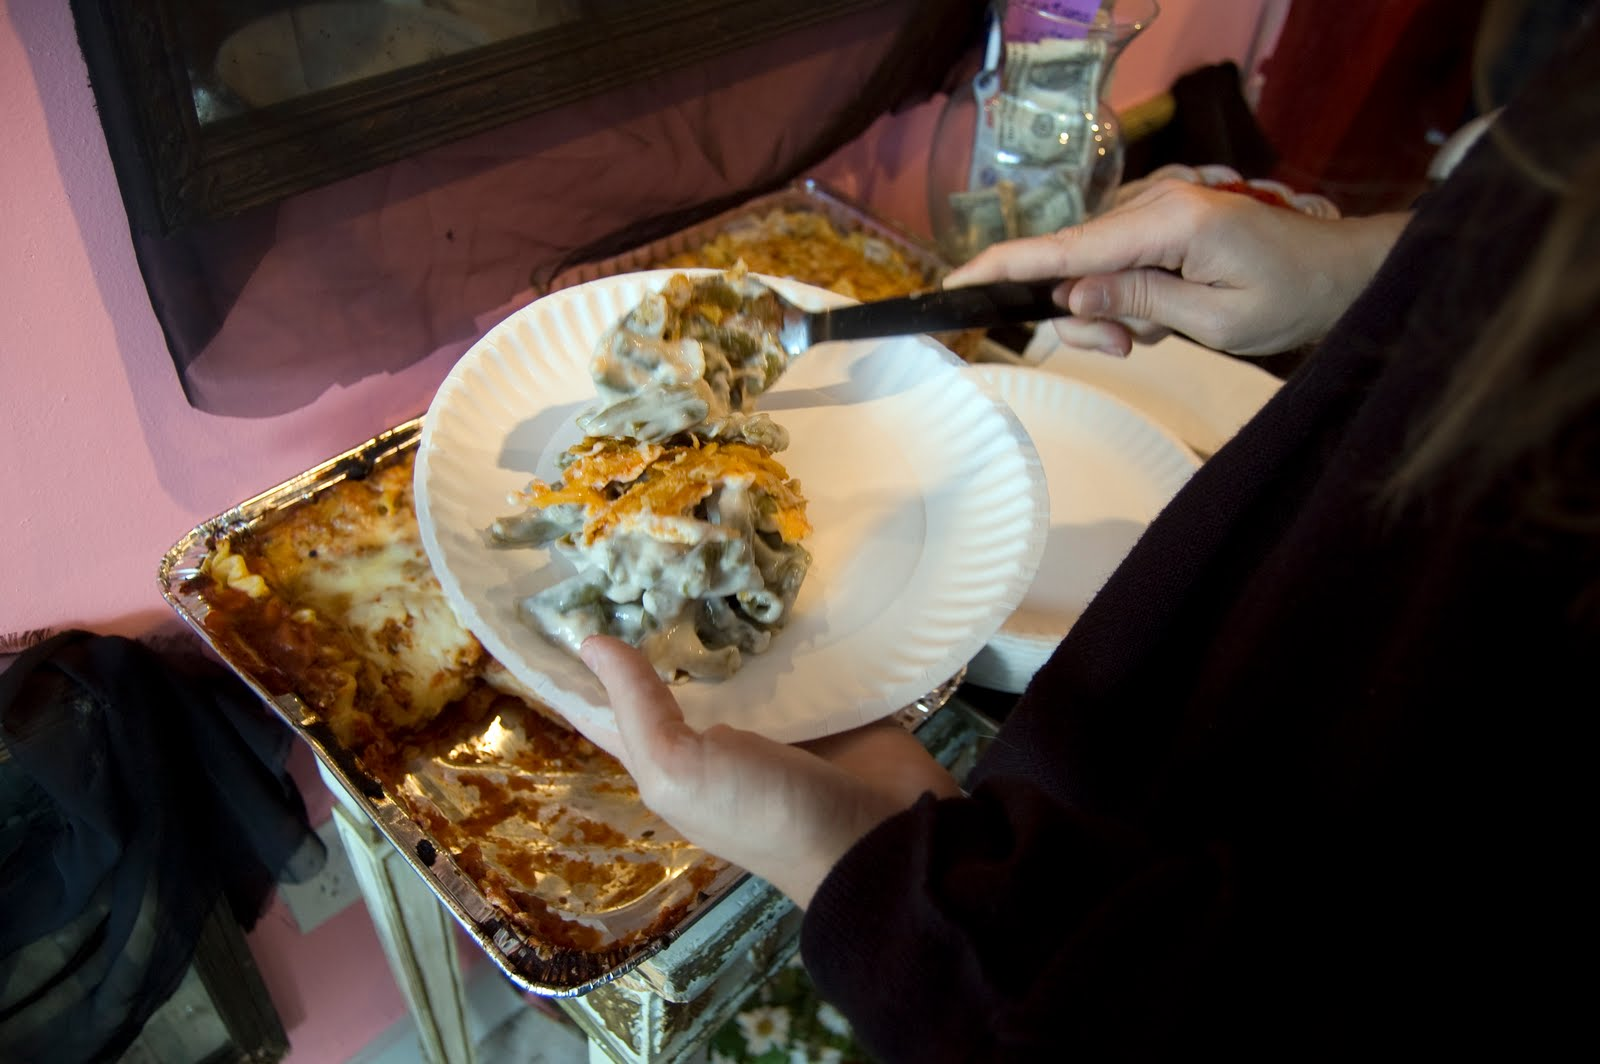 What To Eat When Someone Dies: Funeral Food For The Worst Of Times (PHOTOS)